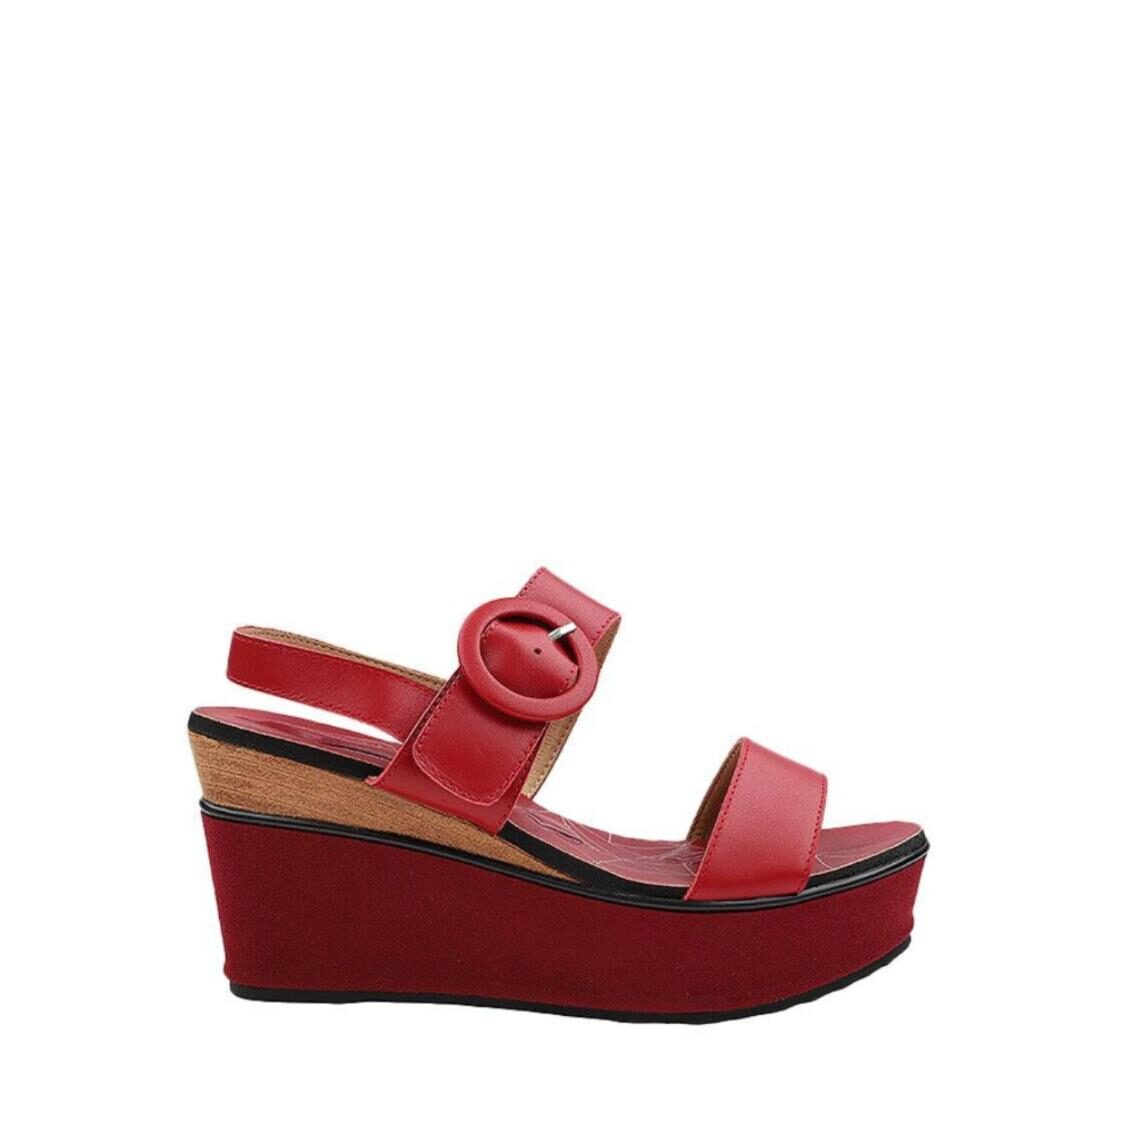 Maridith Justyne Slingback Red